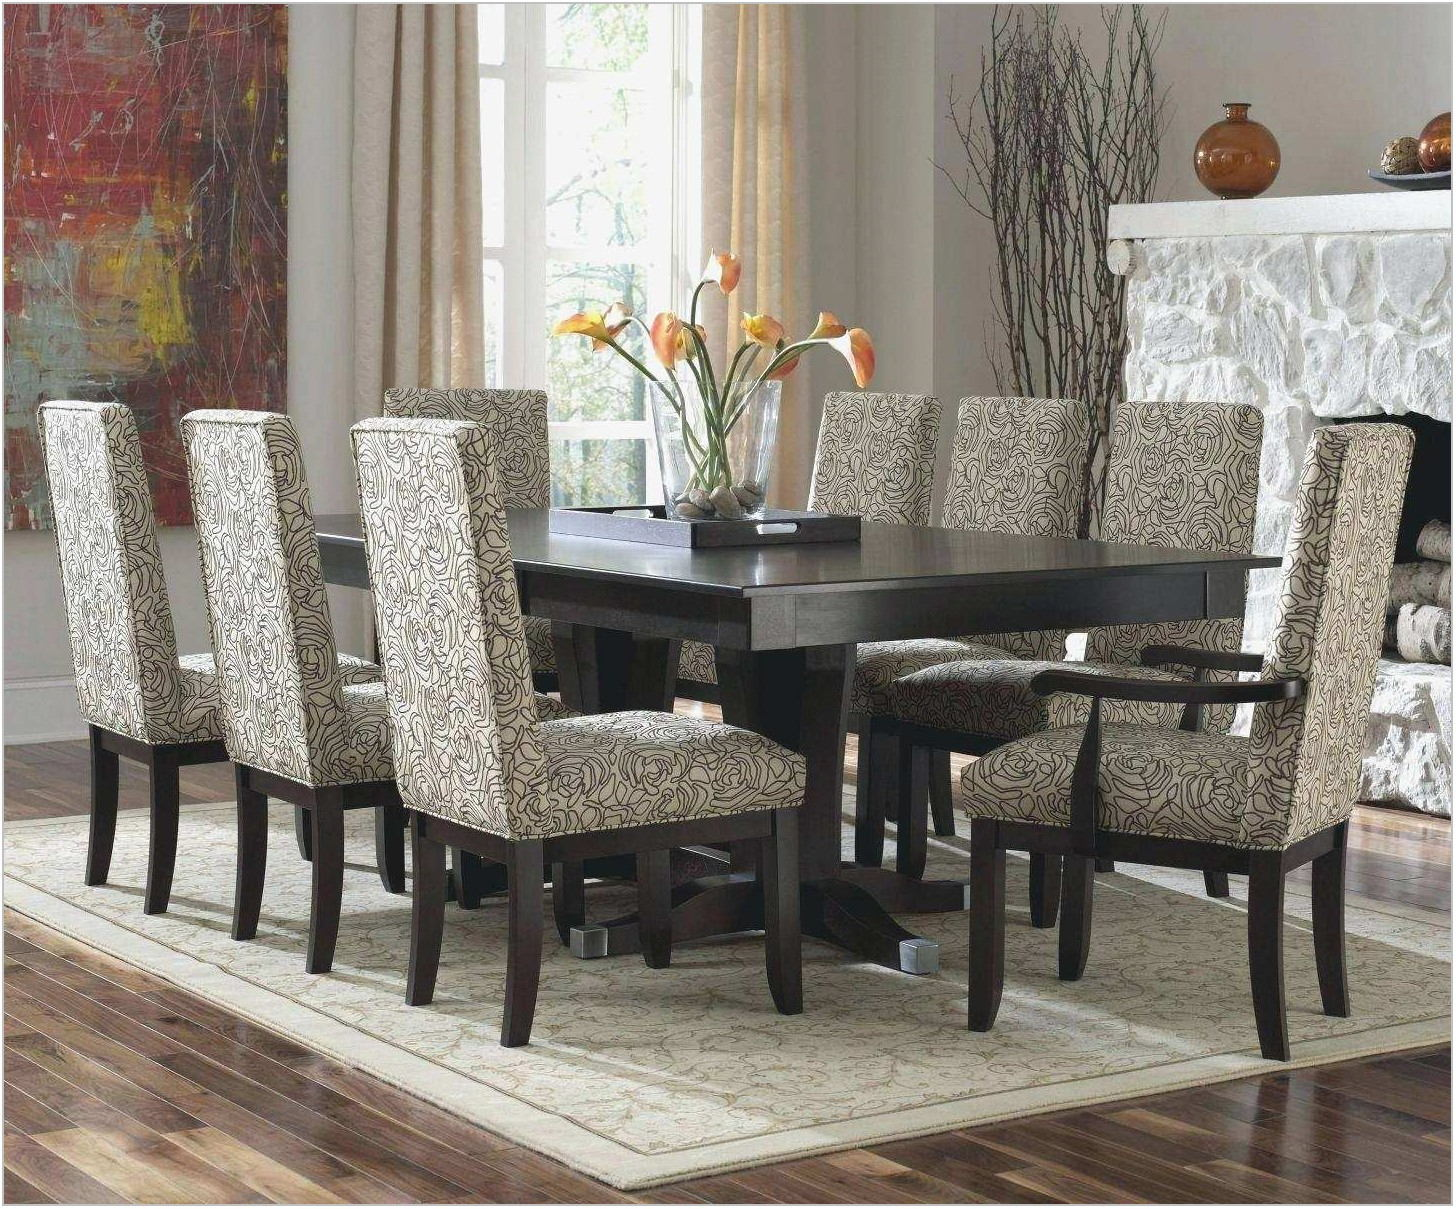 Rochester Dining Room Furniture